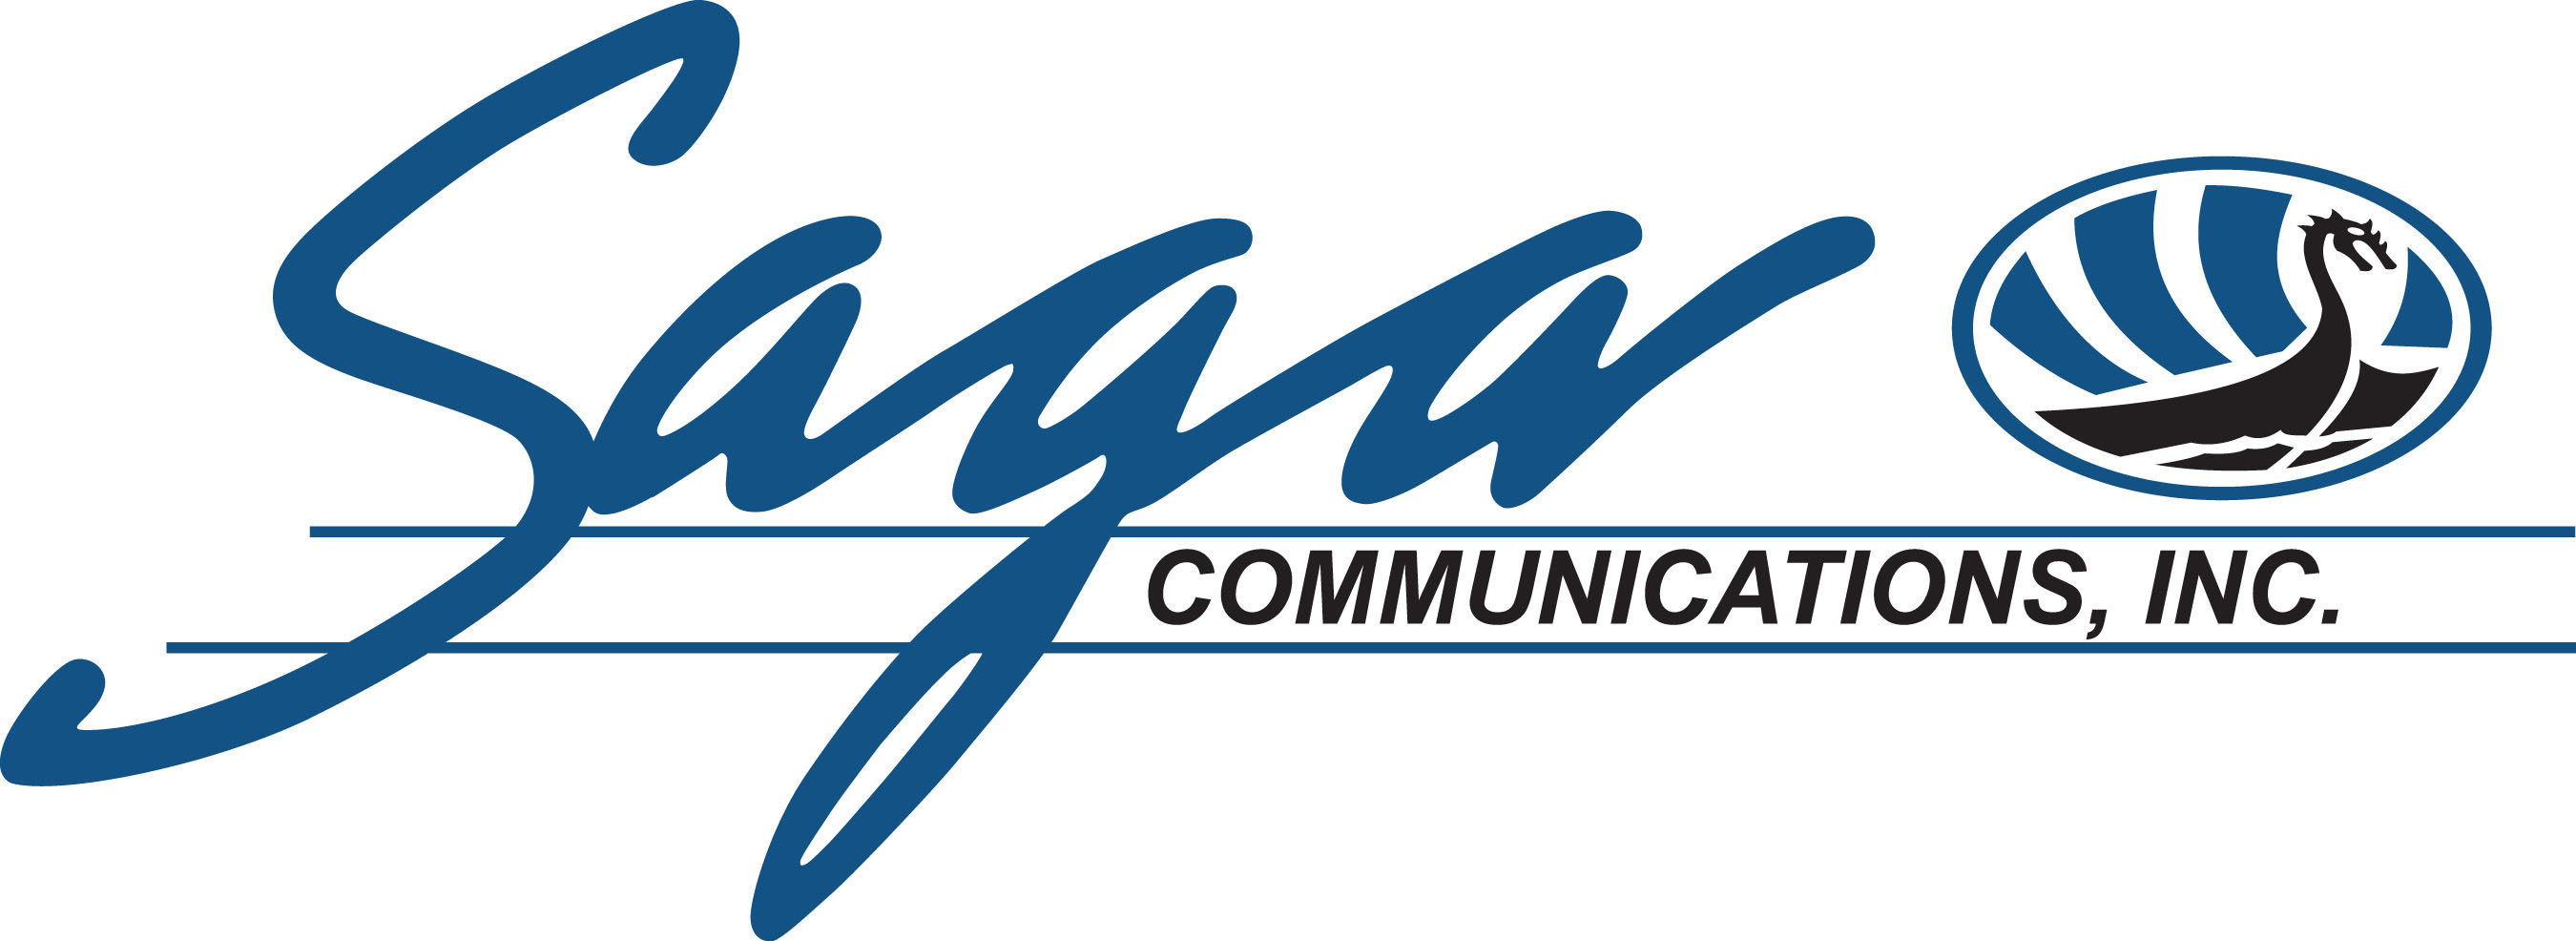 Saga Communications, Inc. Reports 4th Quarter and Year End 2015 Results Free Cash Flow increased